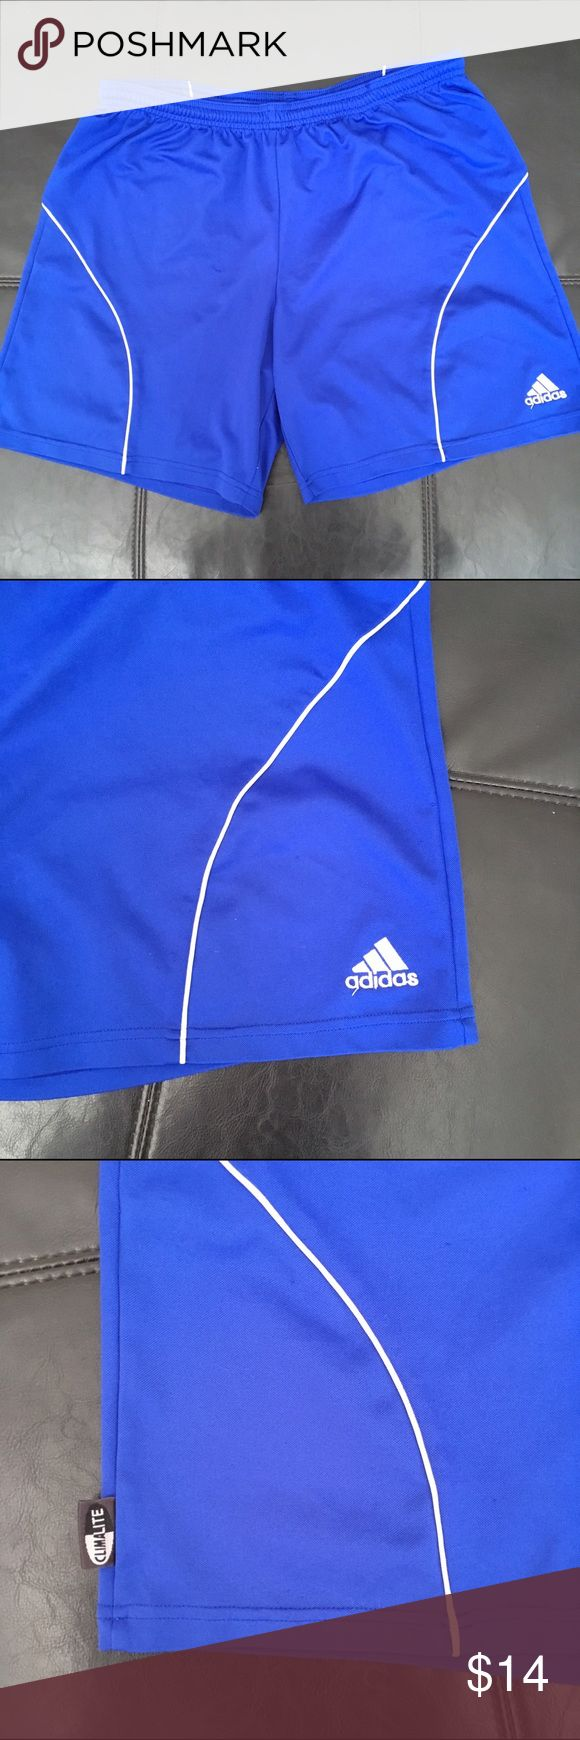 Adidas Royal Blue w/White Dry Weave Gym Shorts Cute, classic, and comfy! Great royal blue shade with white accents. Made from dry weave (climate) material to keep you cool and dry while working out. Excellent quality and condition. Check out my other listings to bundle and save 25% 😎! Adidas Shorts